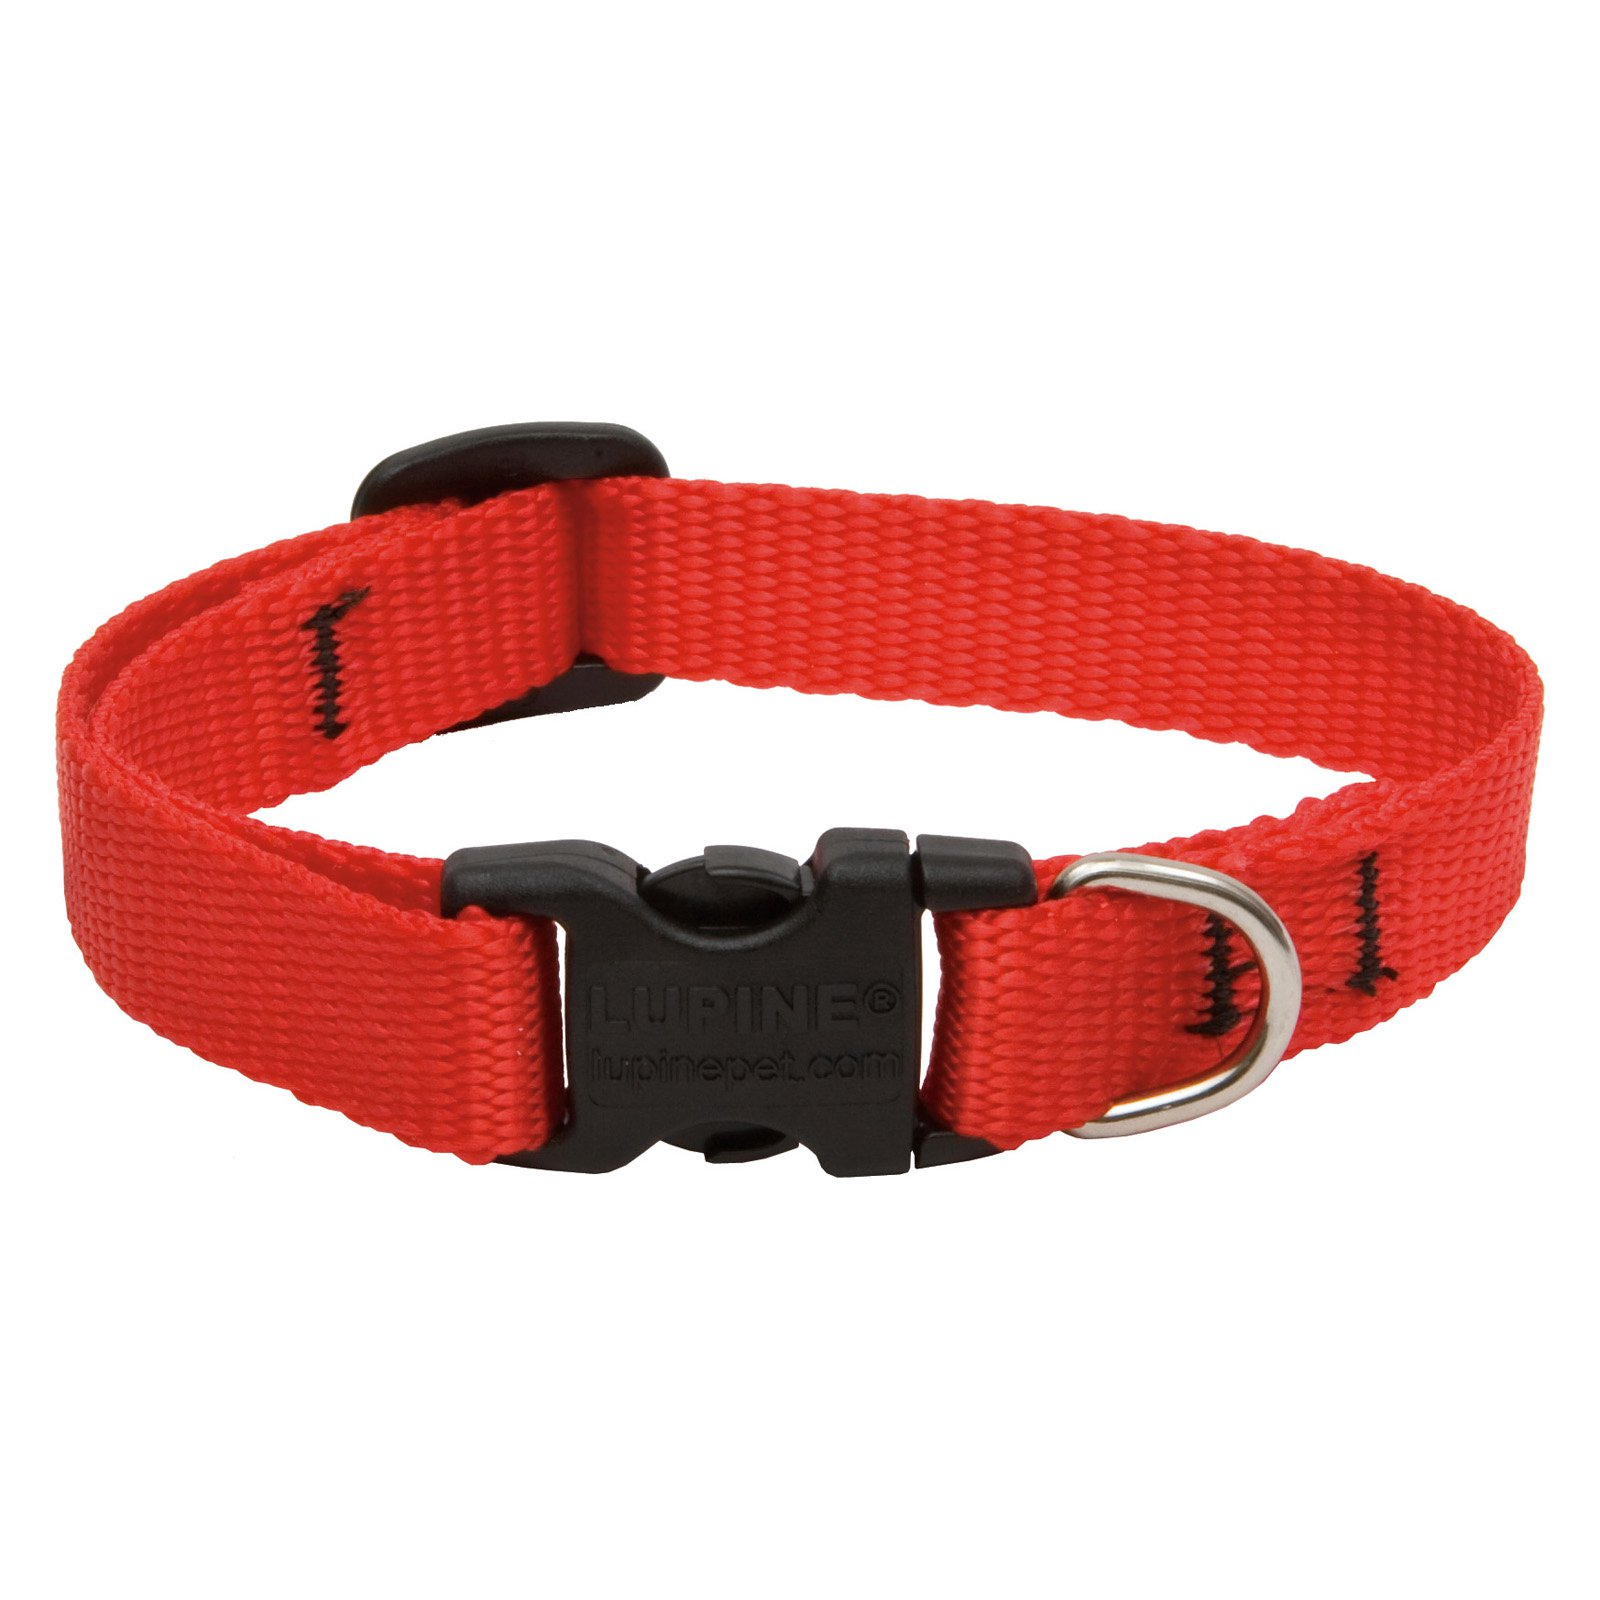 "Lupine Collars and Leads 22534 Red 1/2"" x 8-12"" Collar"